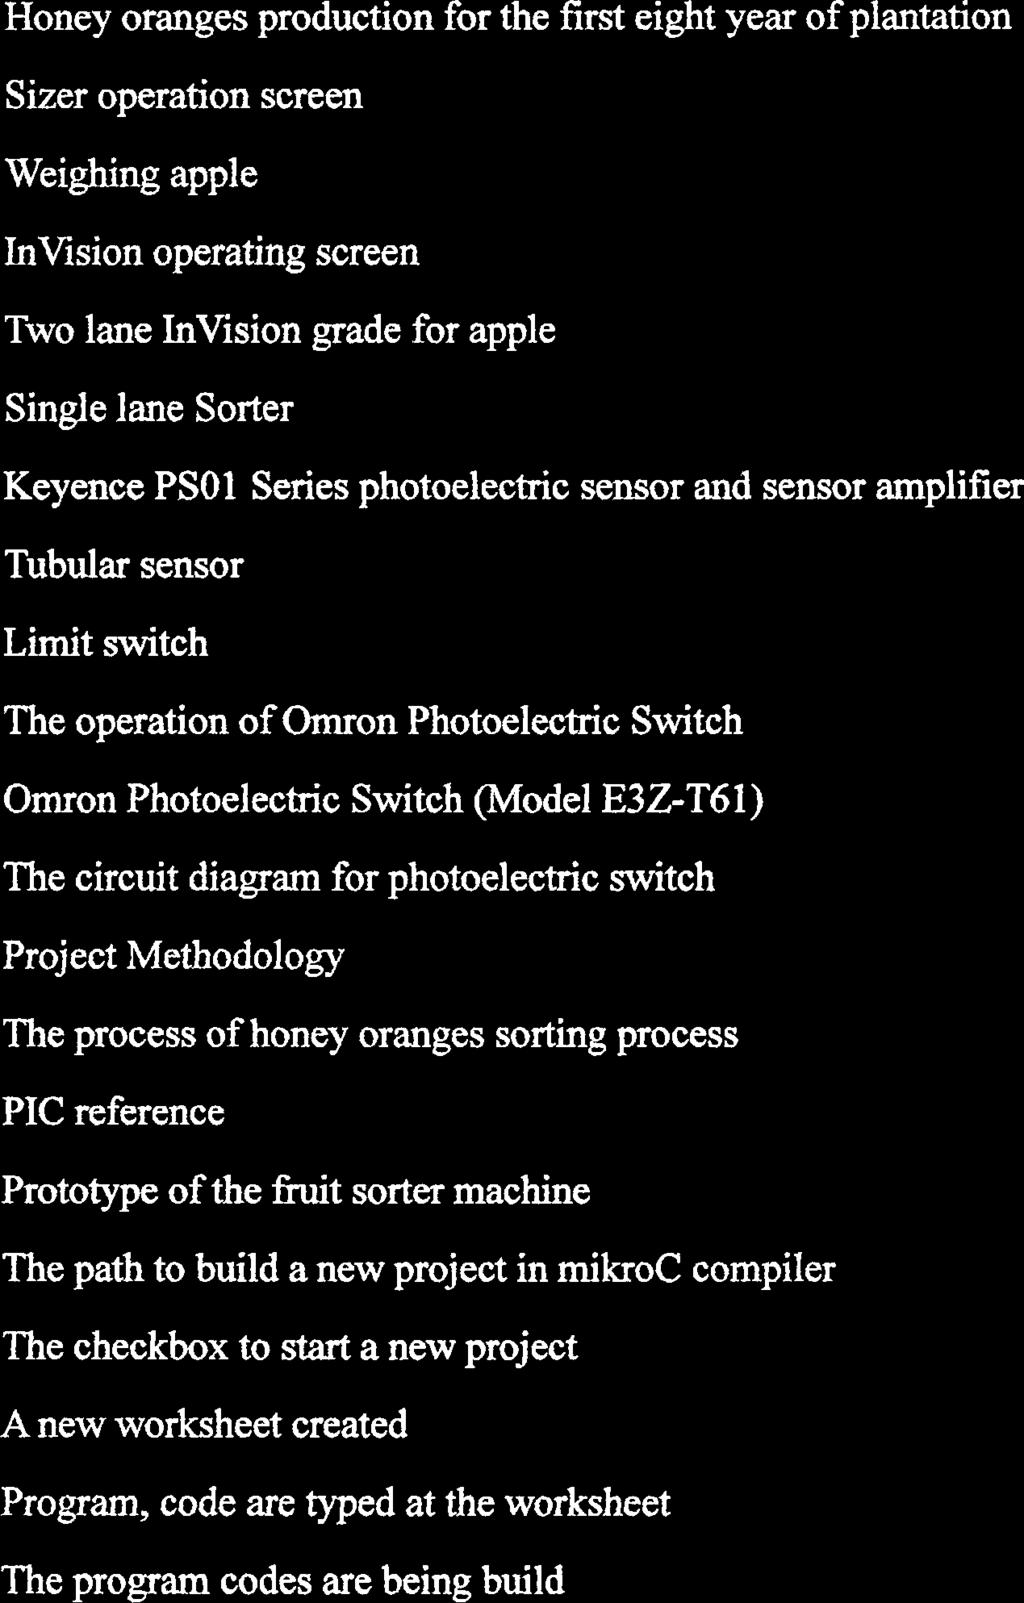 A Fruit Honey Oranges Sorter Machine Pdf Omron Photoelectric Sensor Wiring Diagram List Of Figures Figure Title Page Production For The First Eight Year Plantation